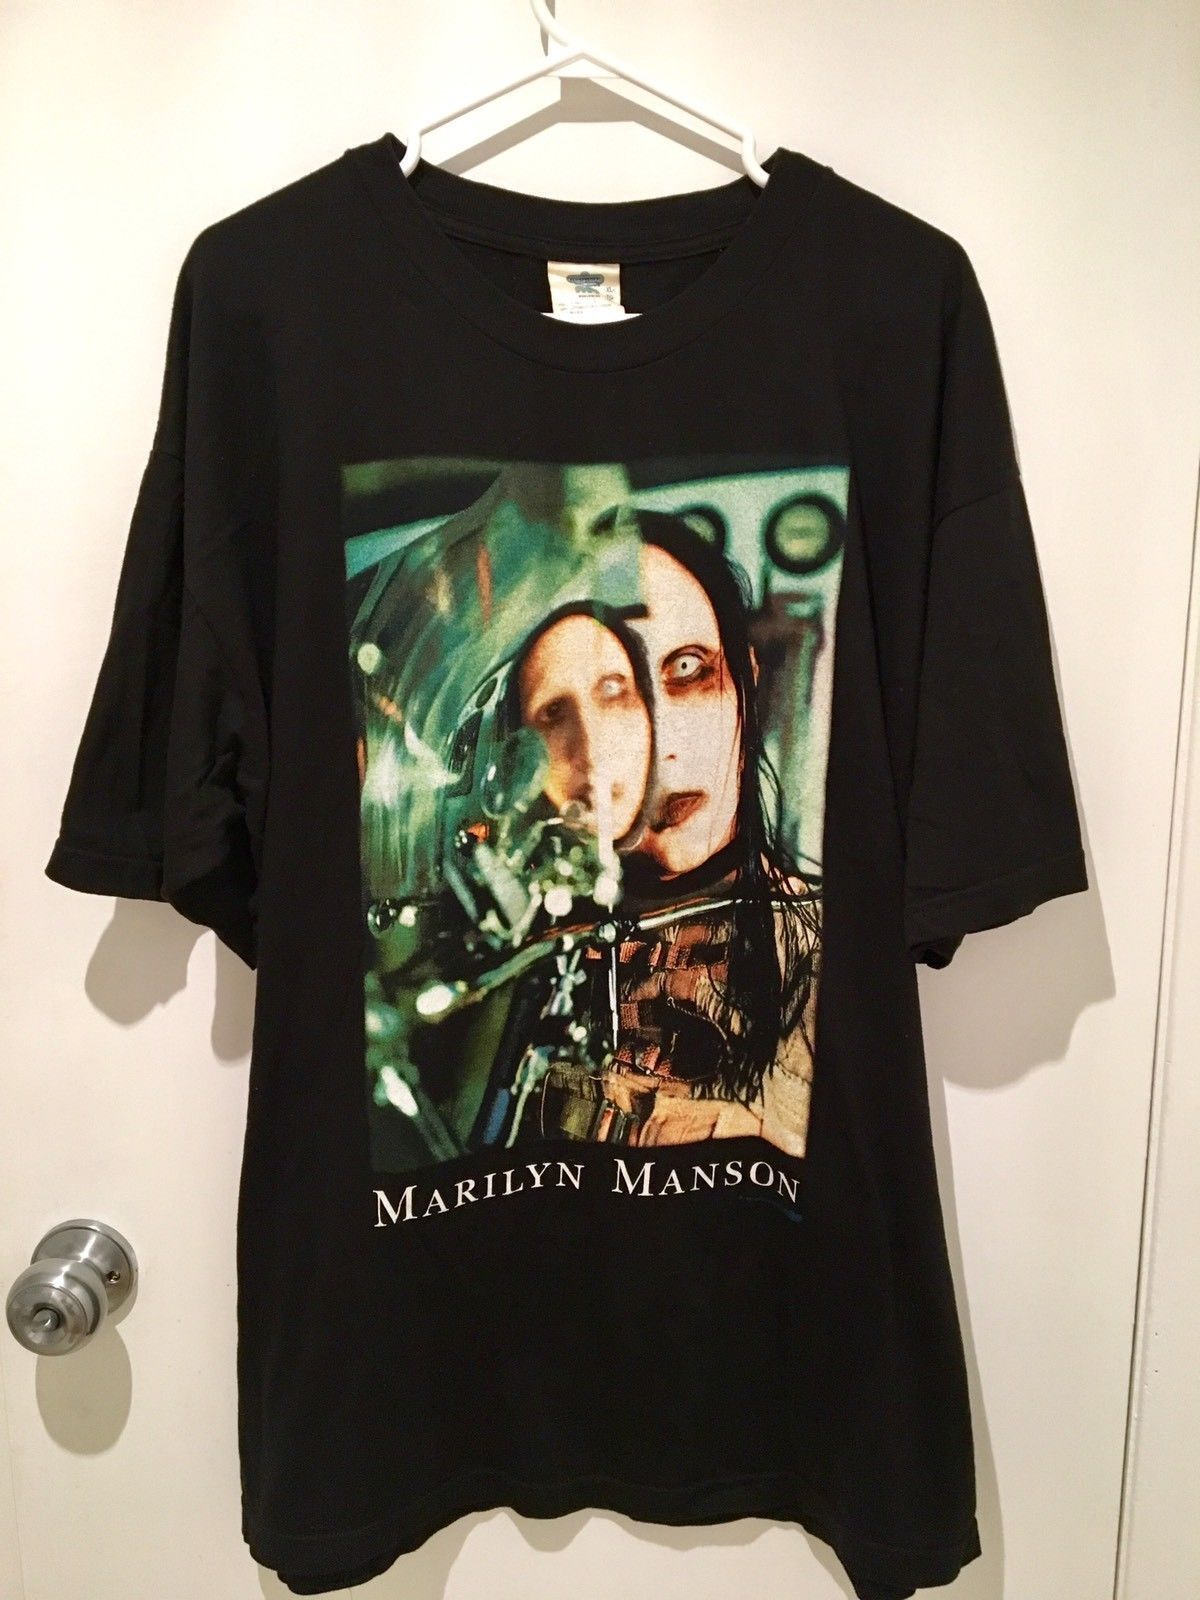 Vintage 1997 Marilyn Manson Beautiful People T Shirt VERY RARE Hot Sale Sleeves Boy Cotton Men T-Shirt Top Tee